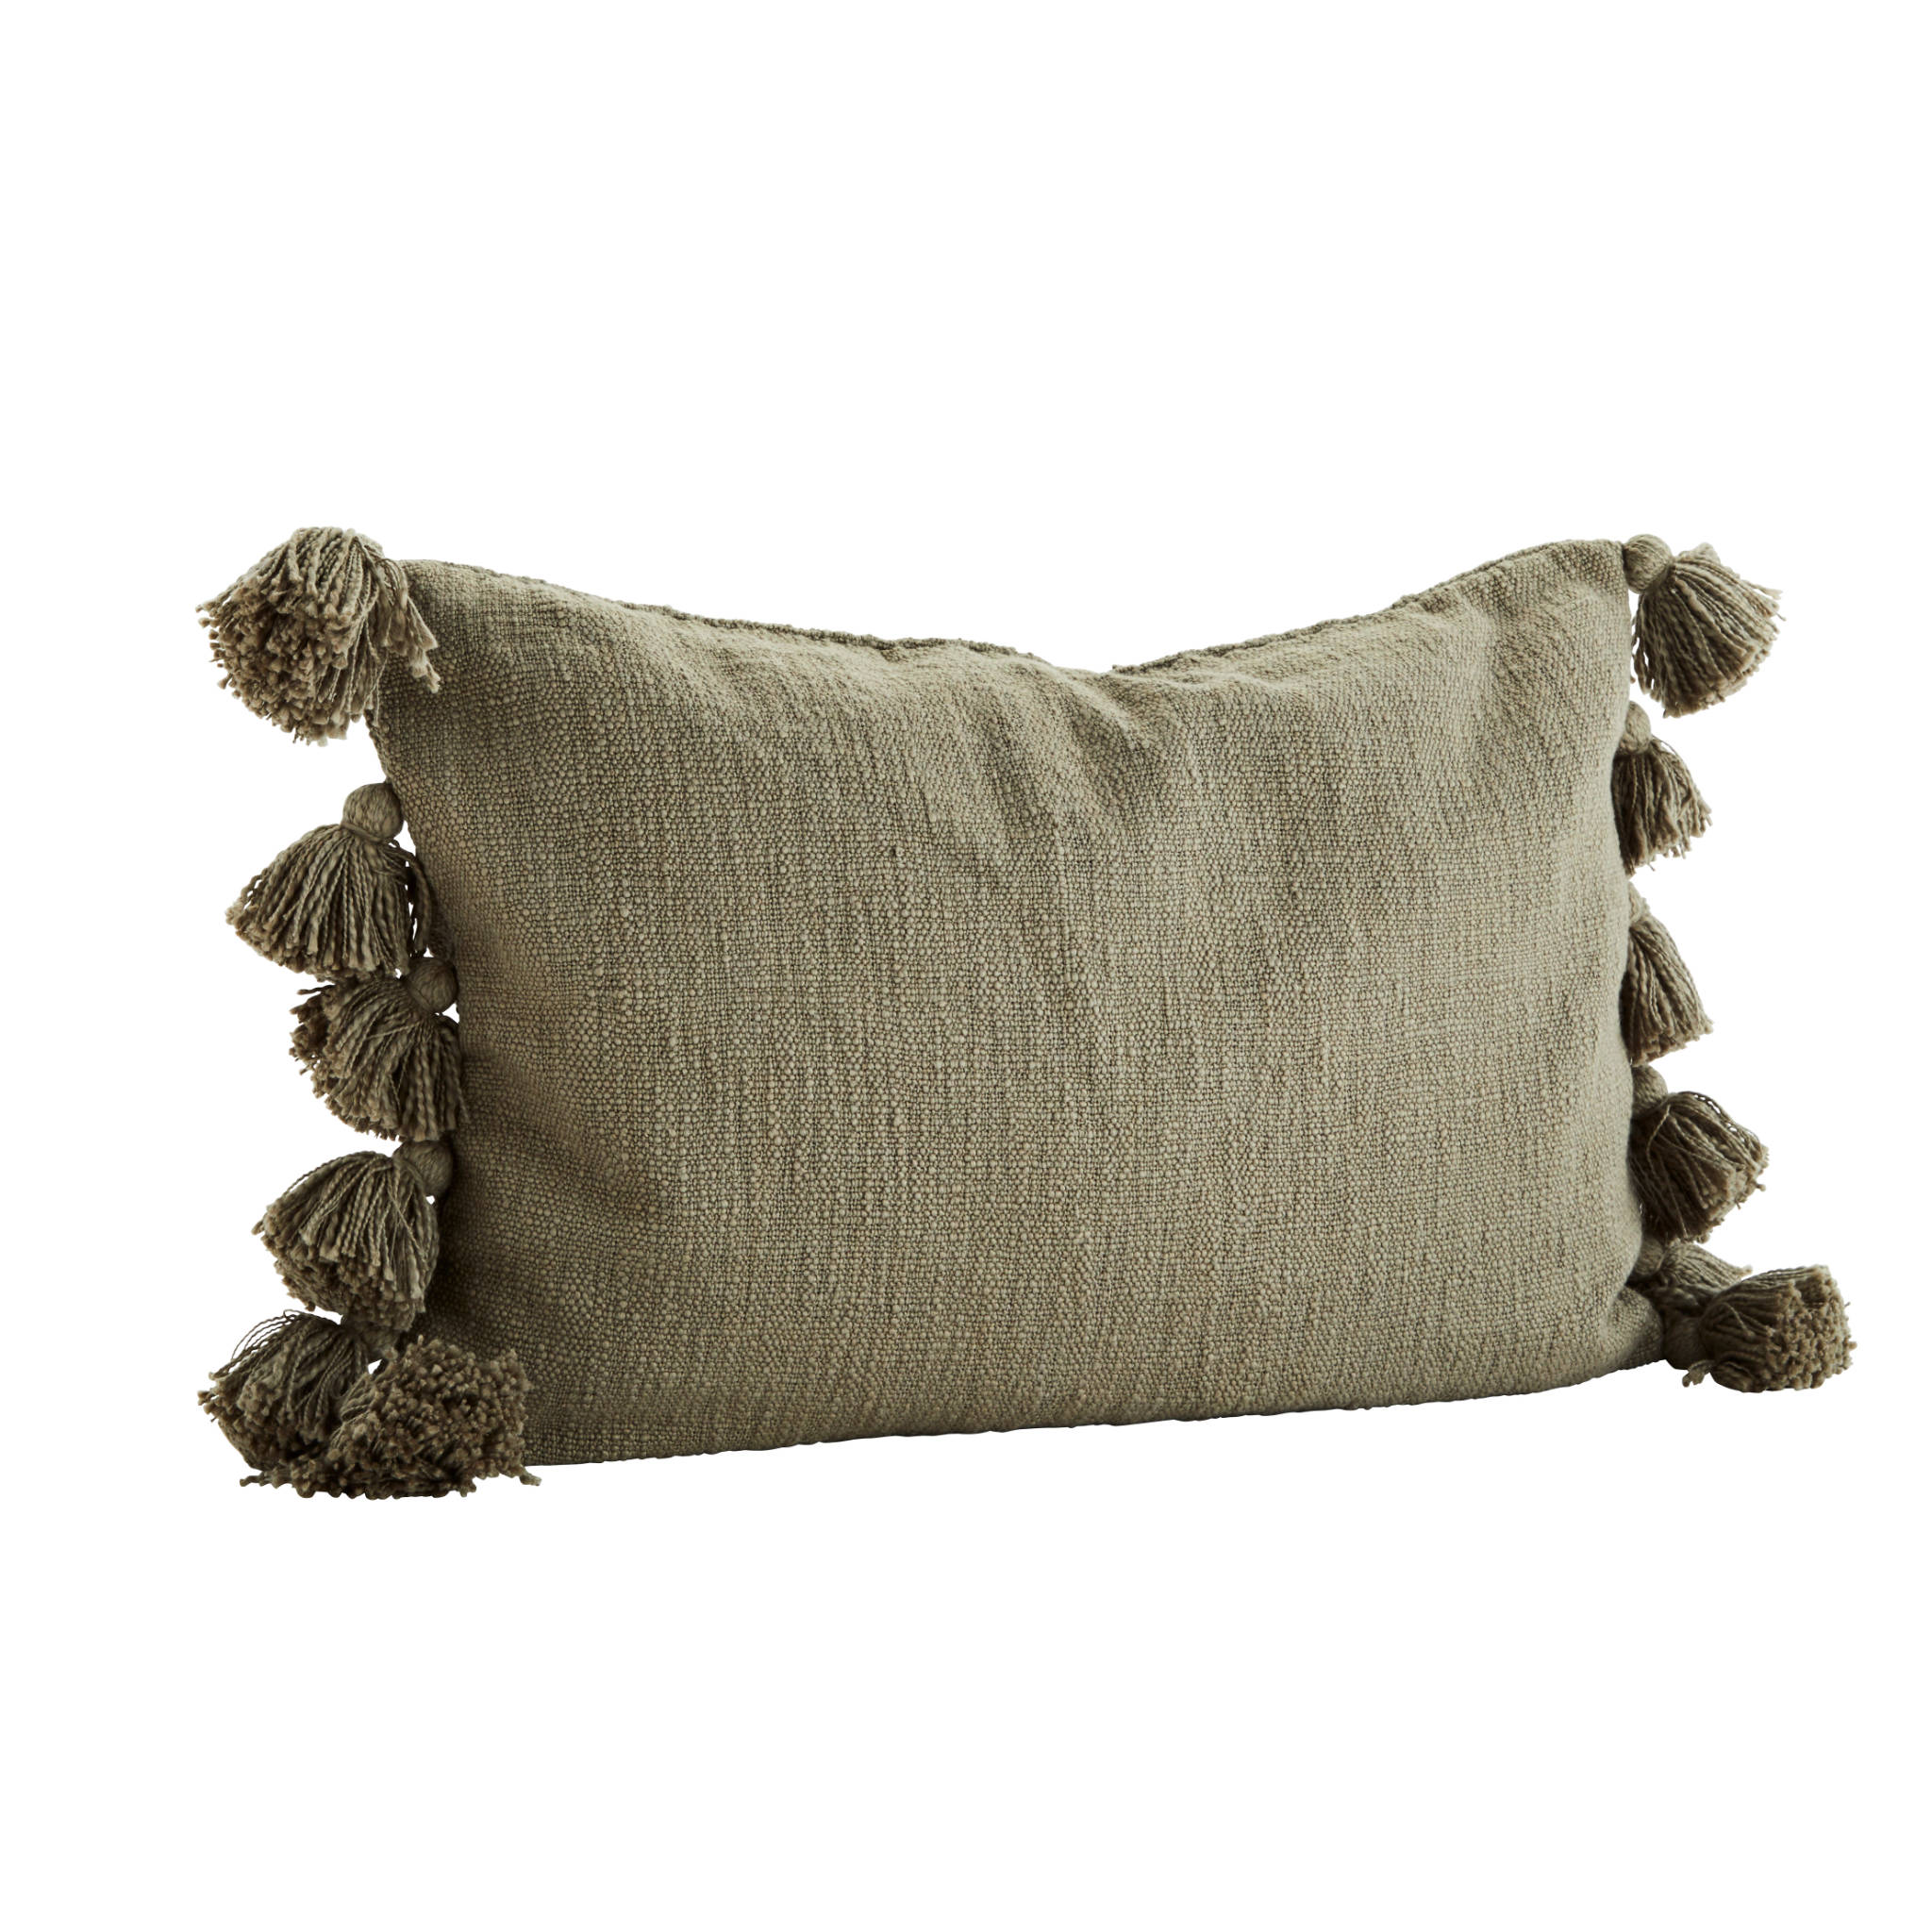 Madam Stoltz Tassle Cushion Cover- Olive